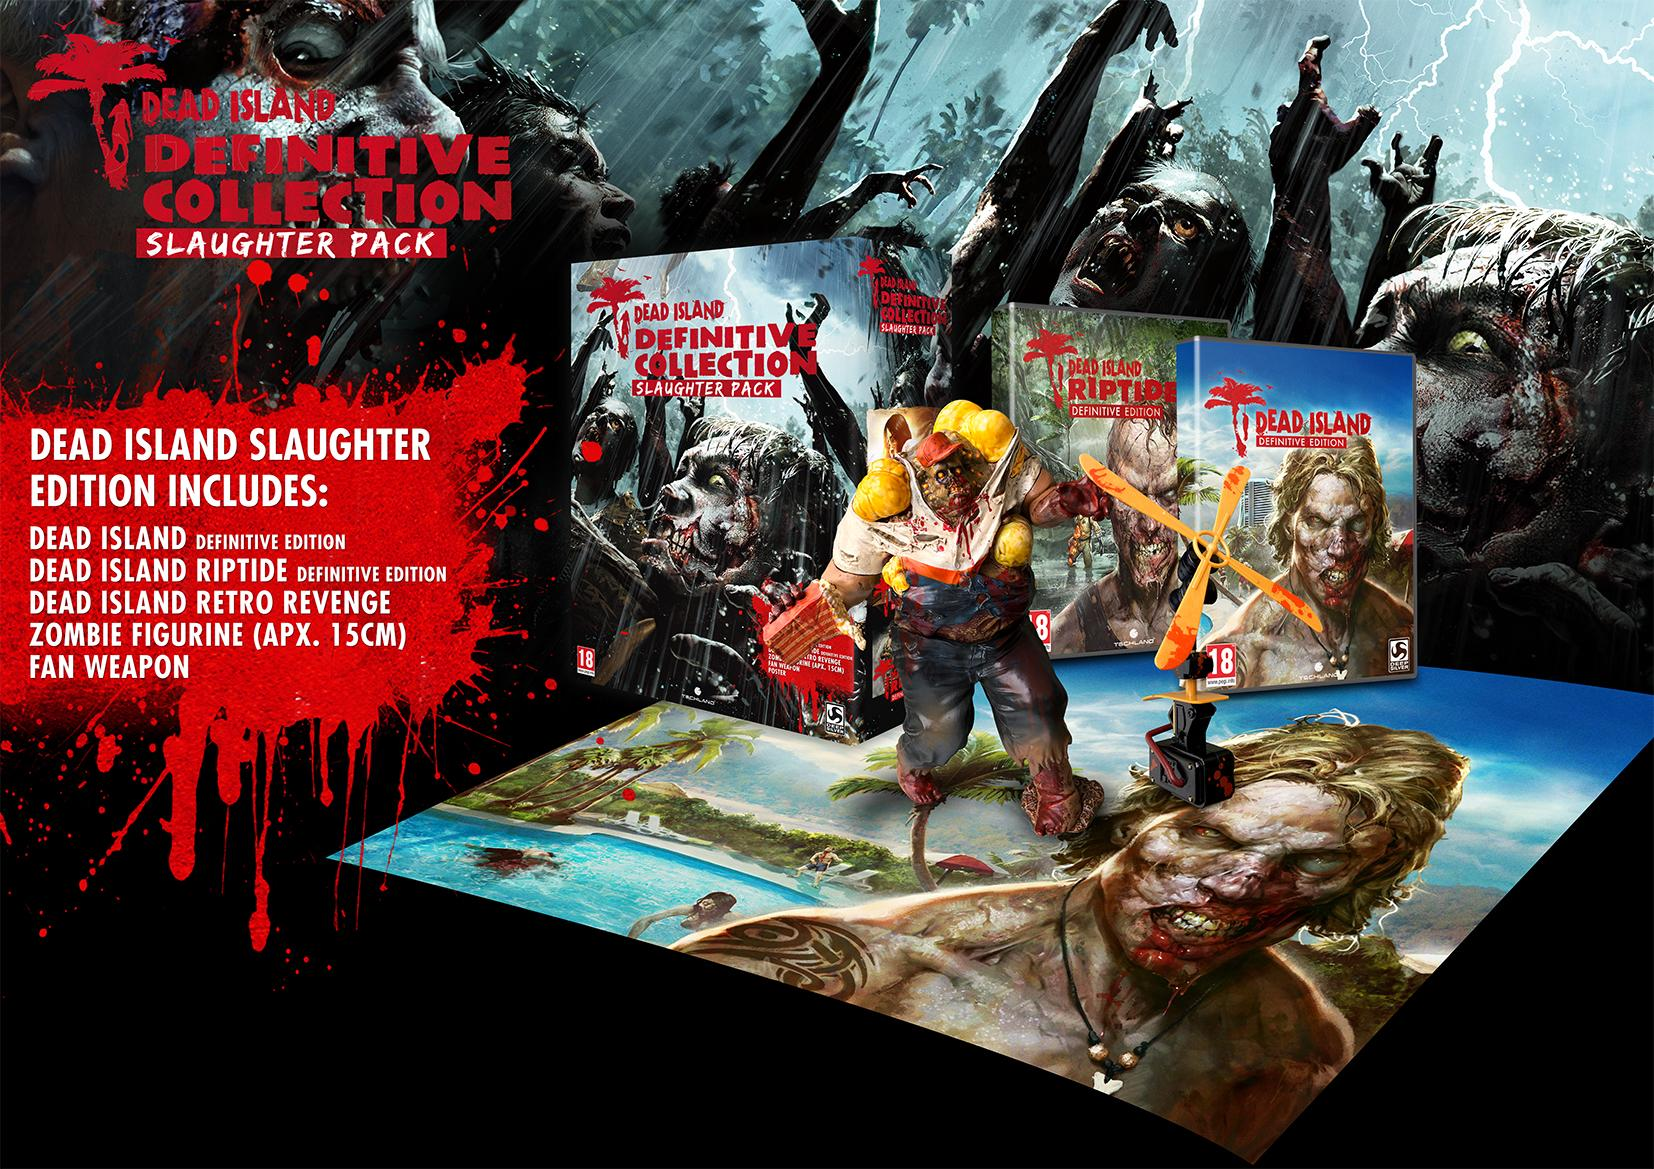 Dead Island Definitive Collection Slaughter